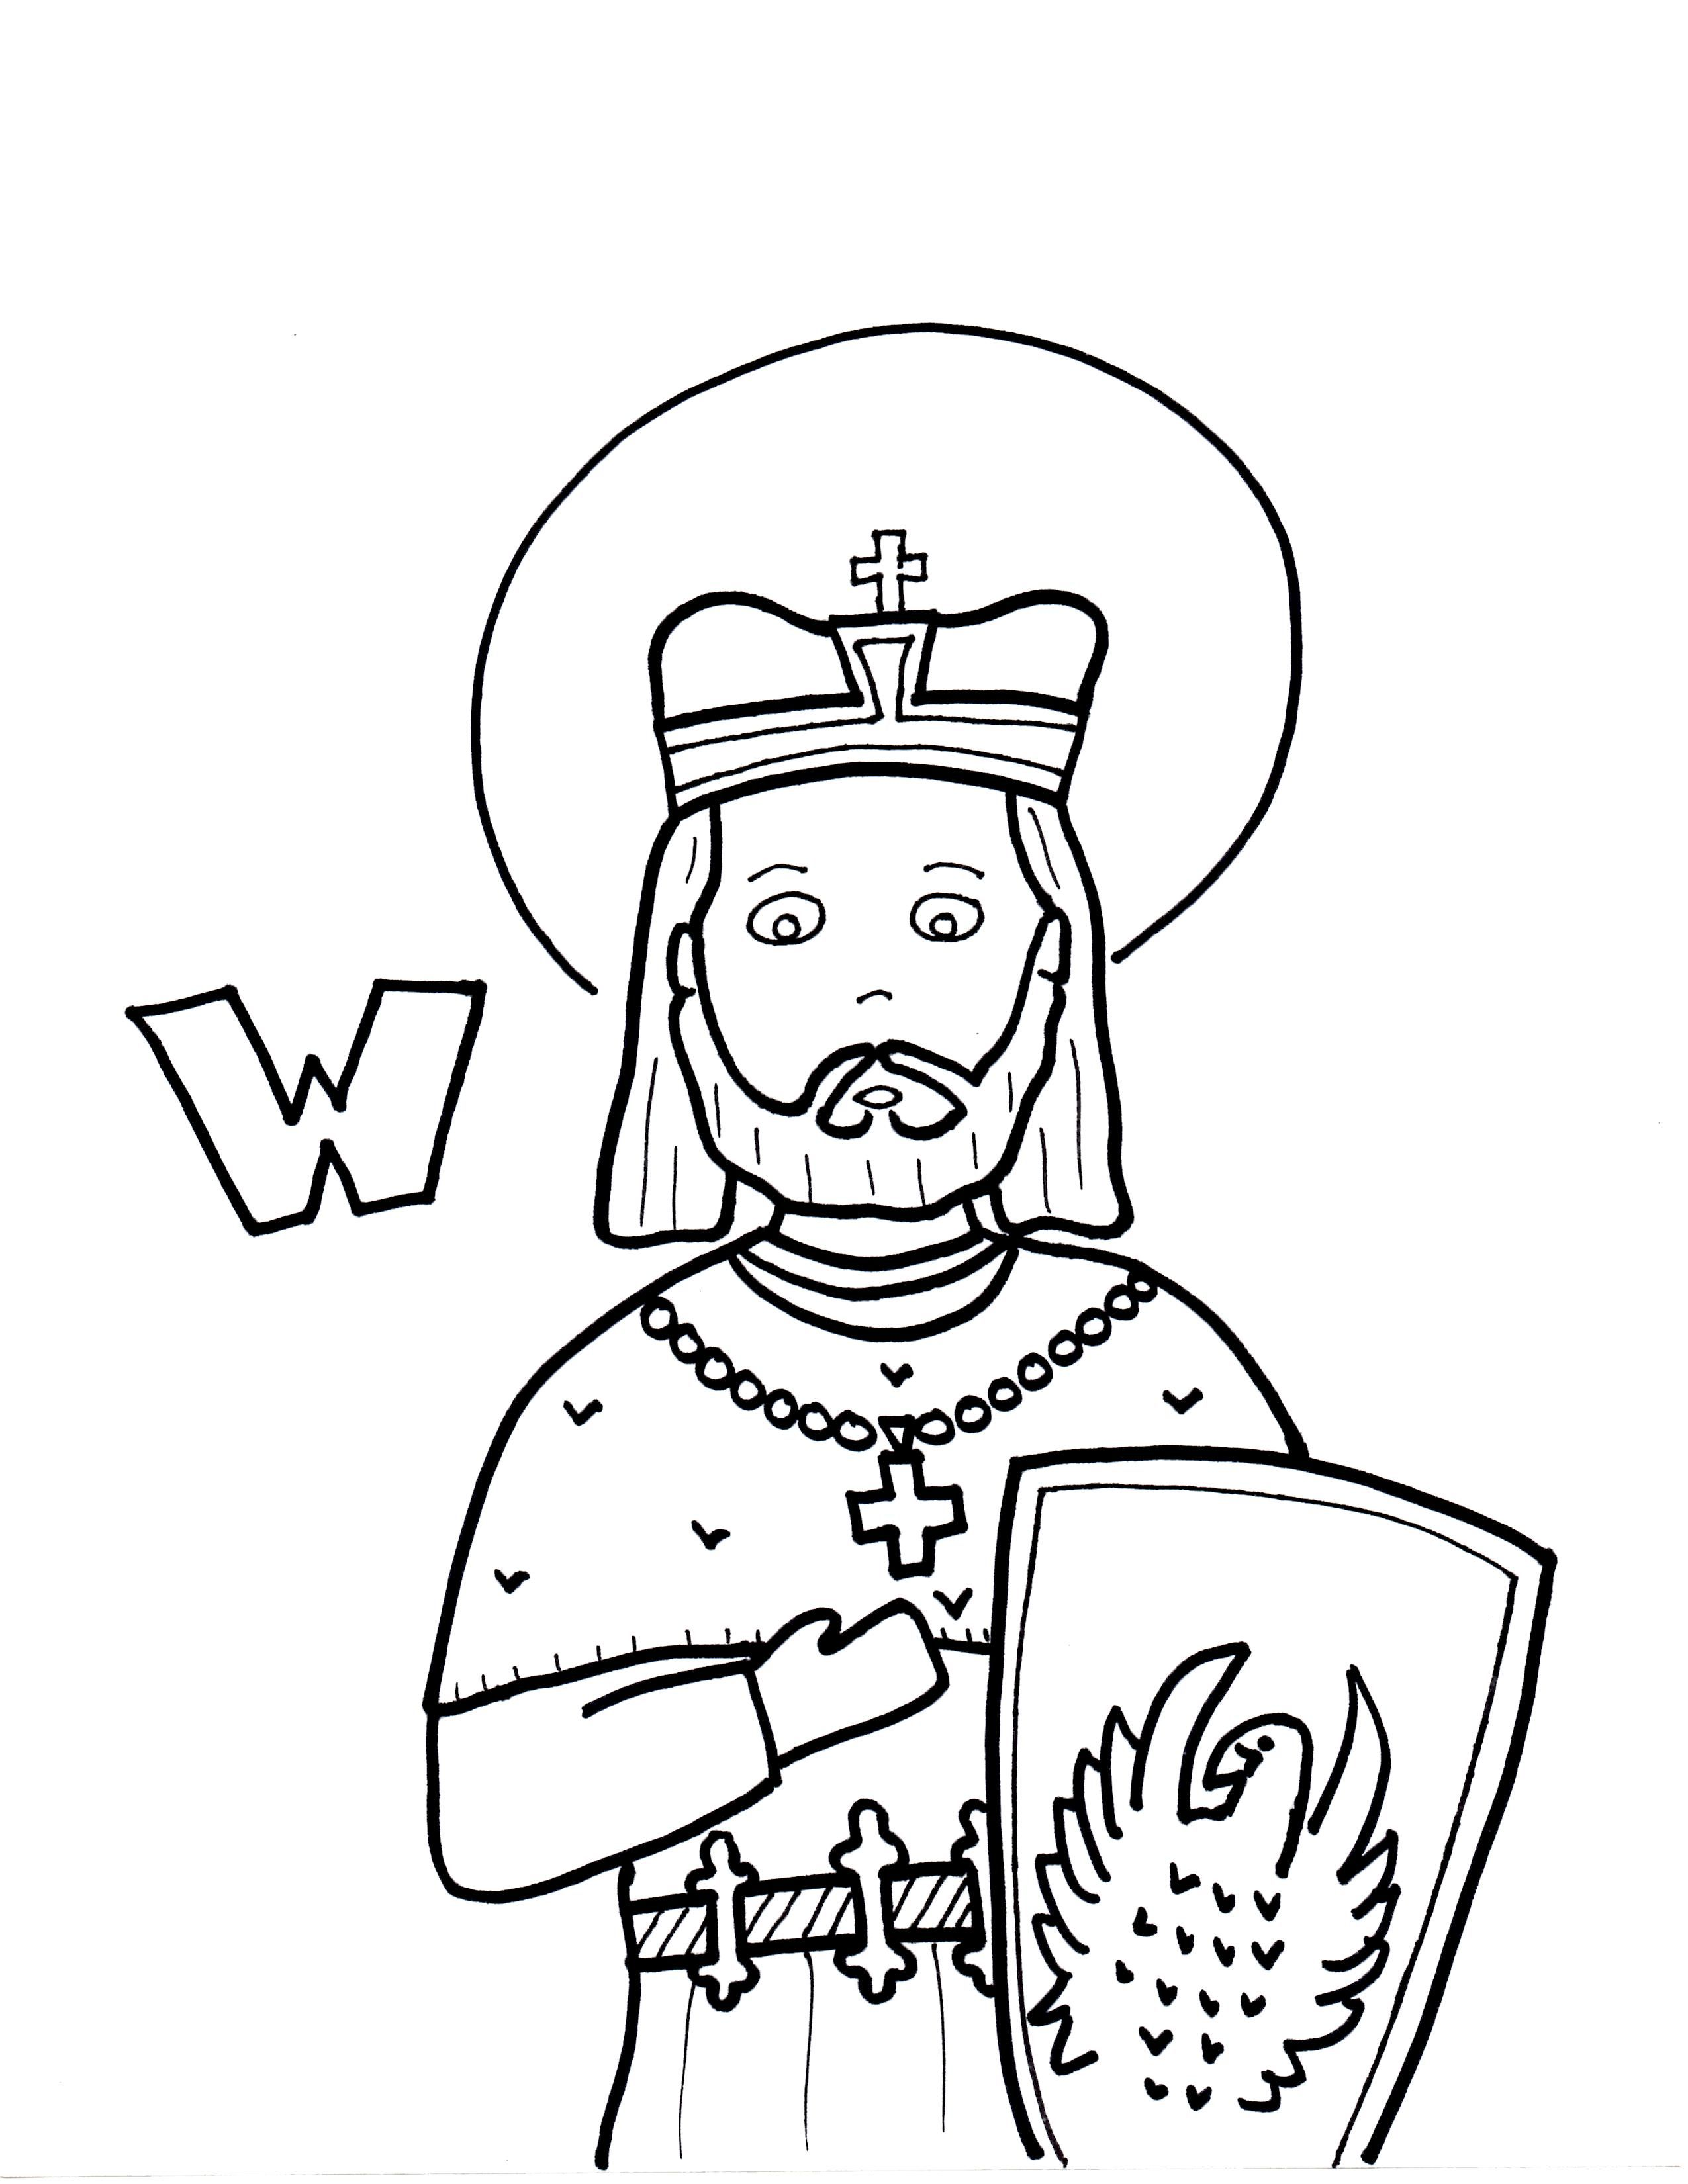 W Is For St Wenceslaus Coloring Pages St Wenceslaus